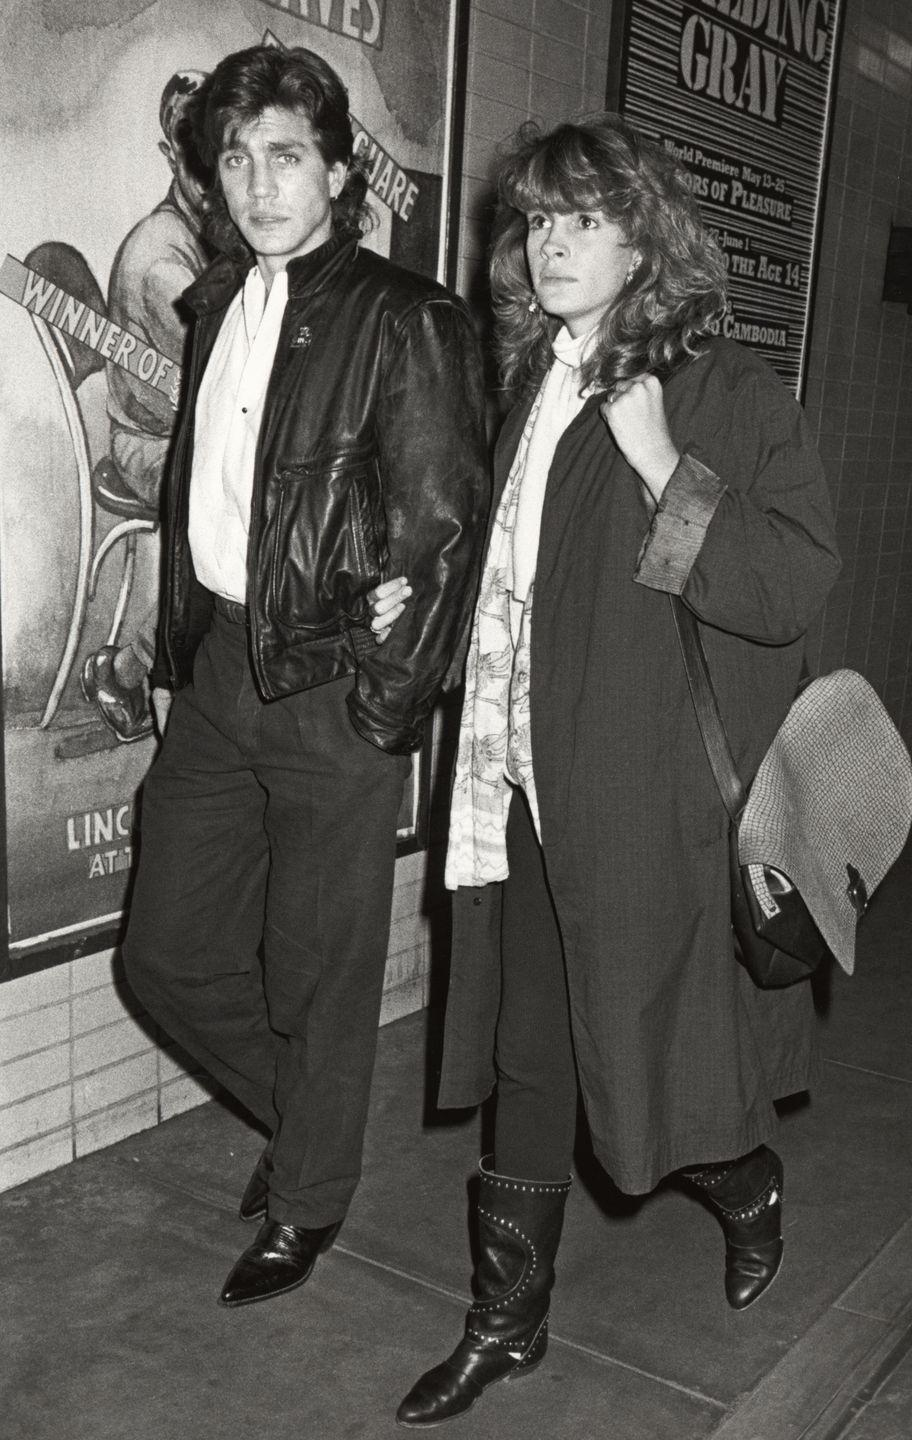 <p>Before Julia Roberts was, well, Julia Roberts, she was introduced to Hollywood by her older brother, Eric Roberts. There's no mistaking the resemblance, as they both share the same lips and famous smile. </p>